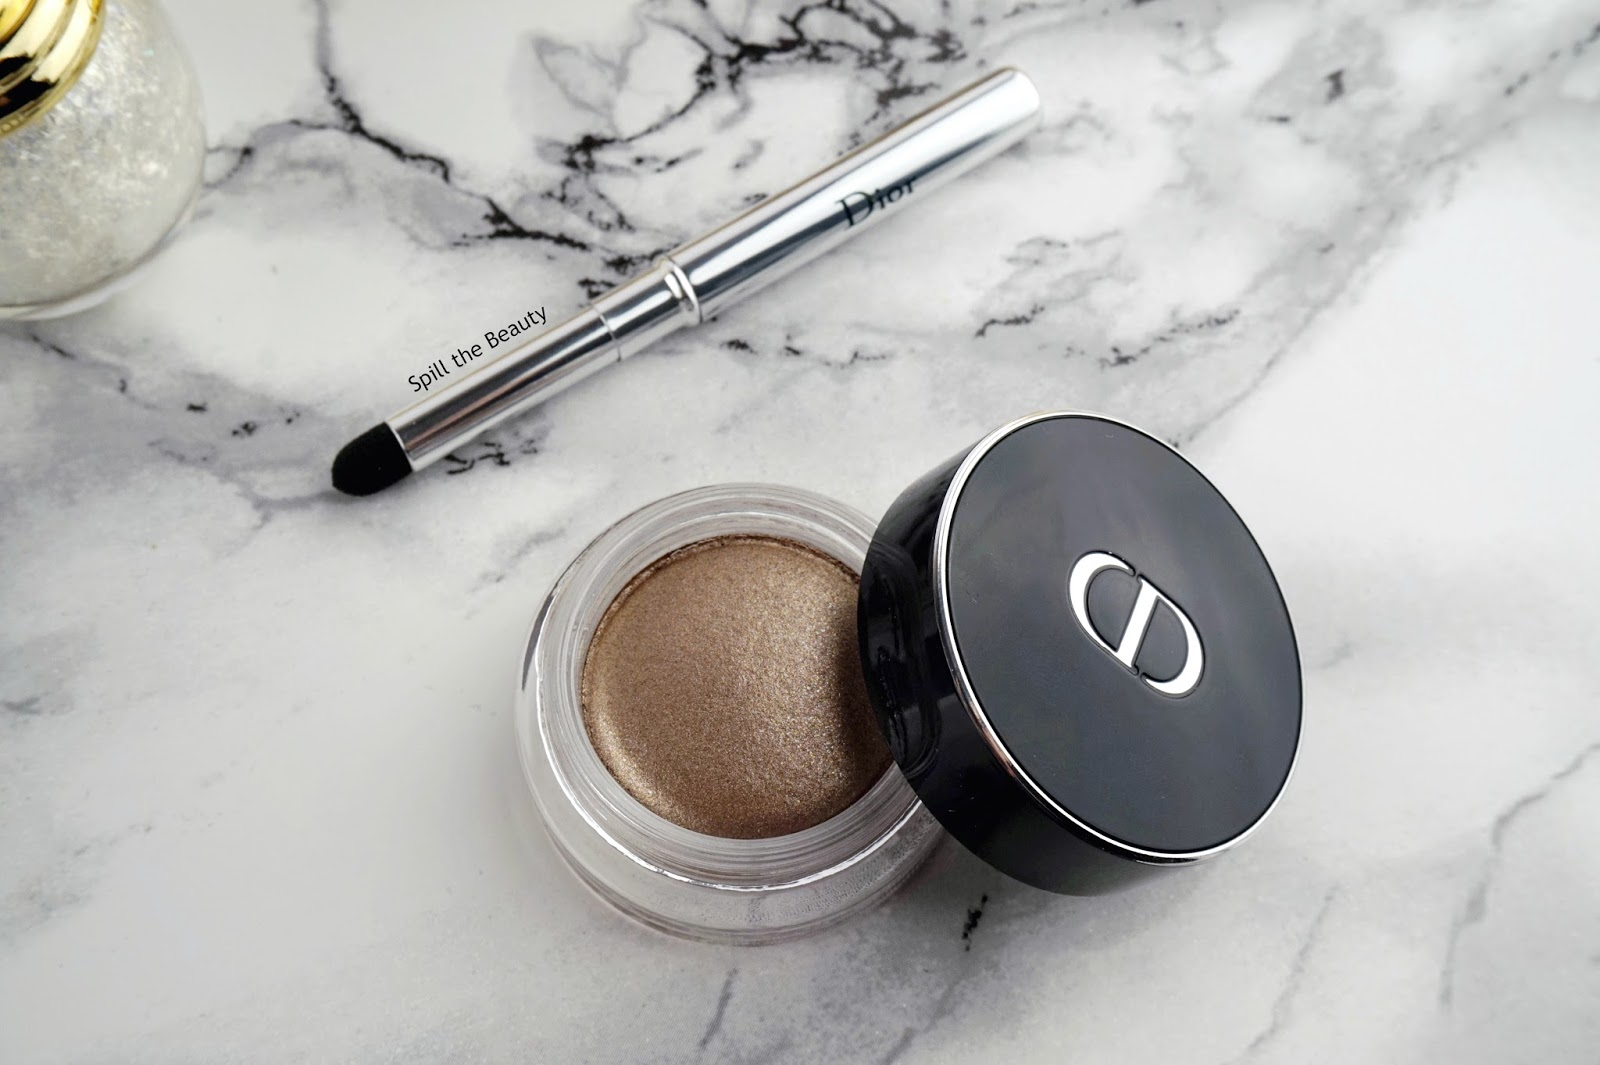 dior holiday makeup 2016 4 review swatch fusion mono infinity